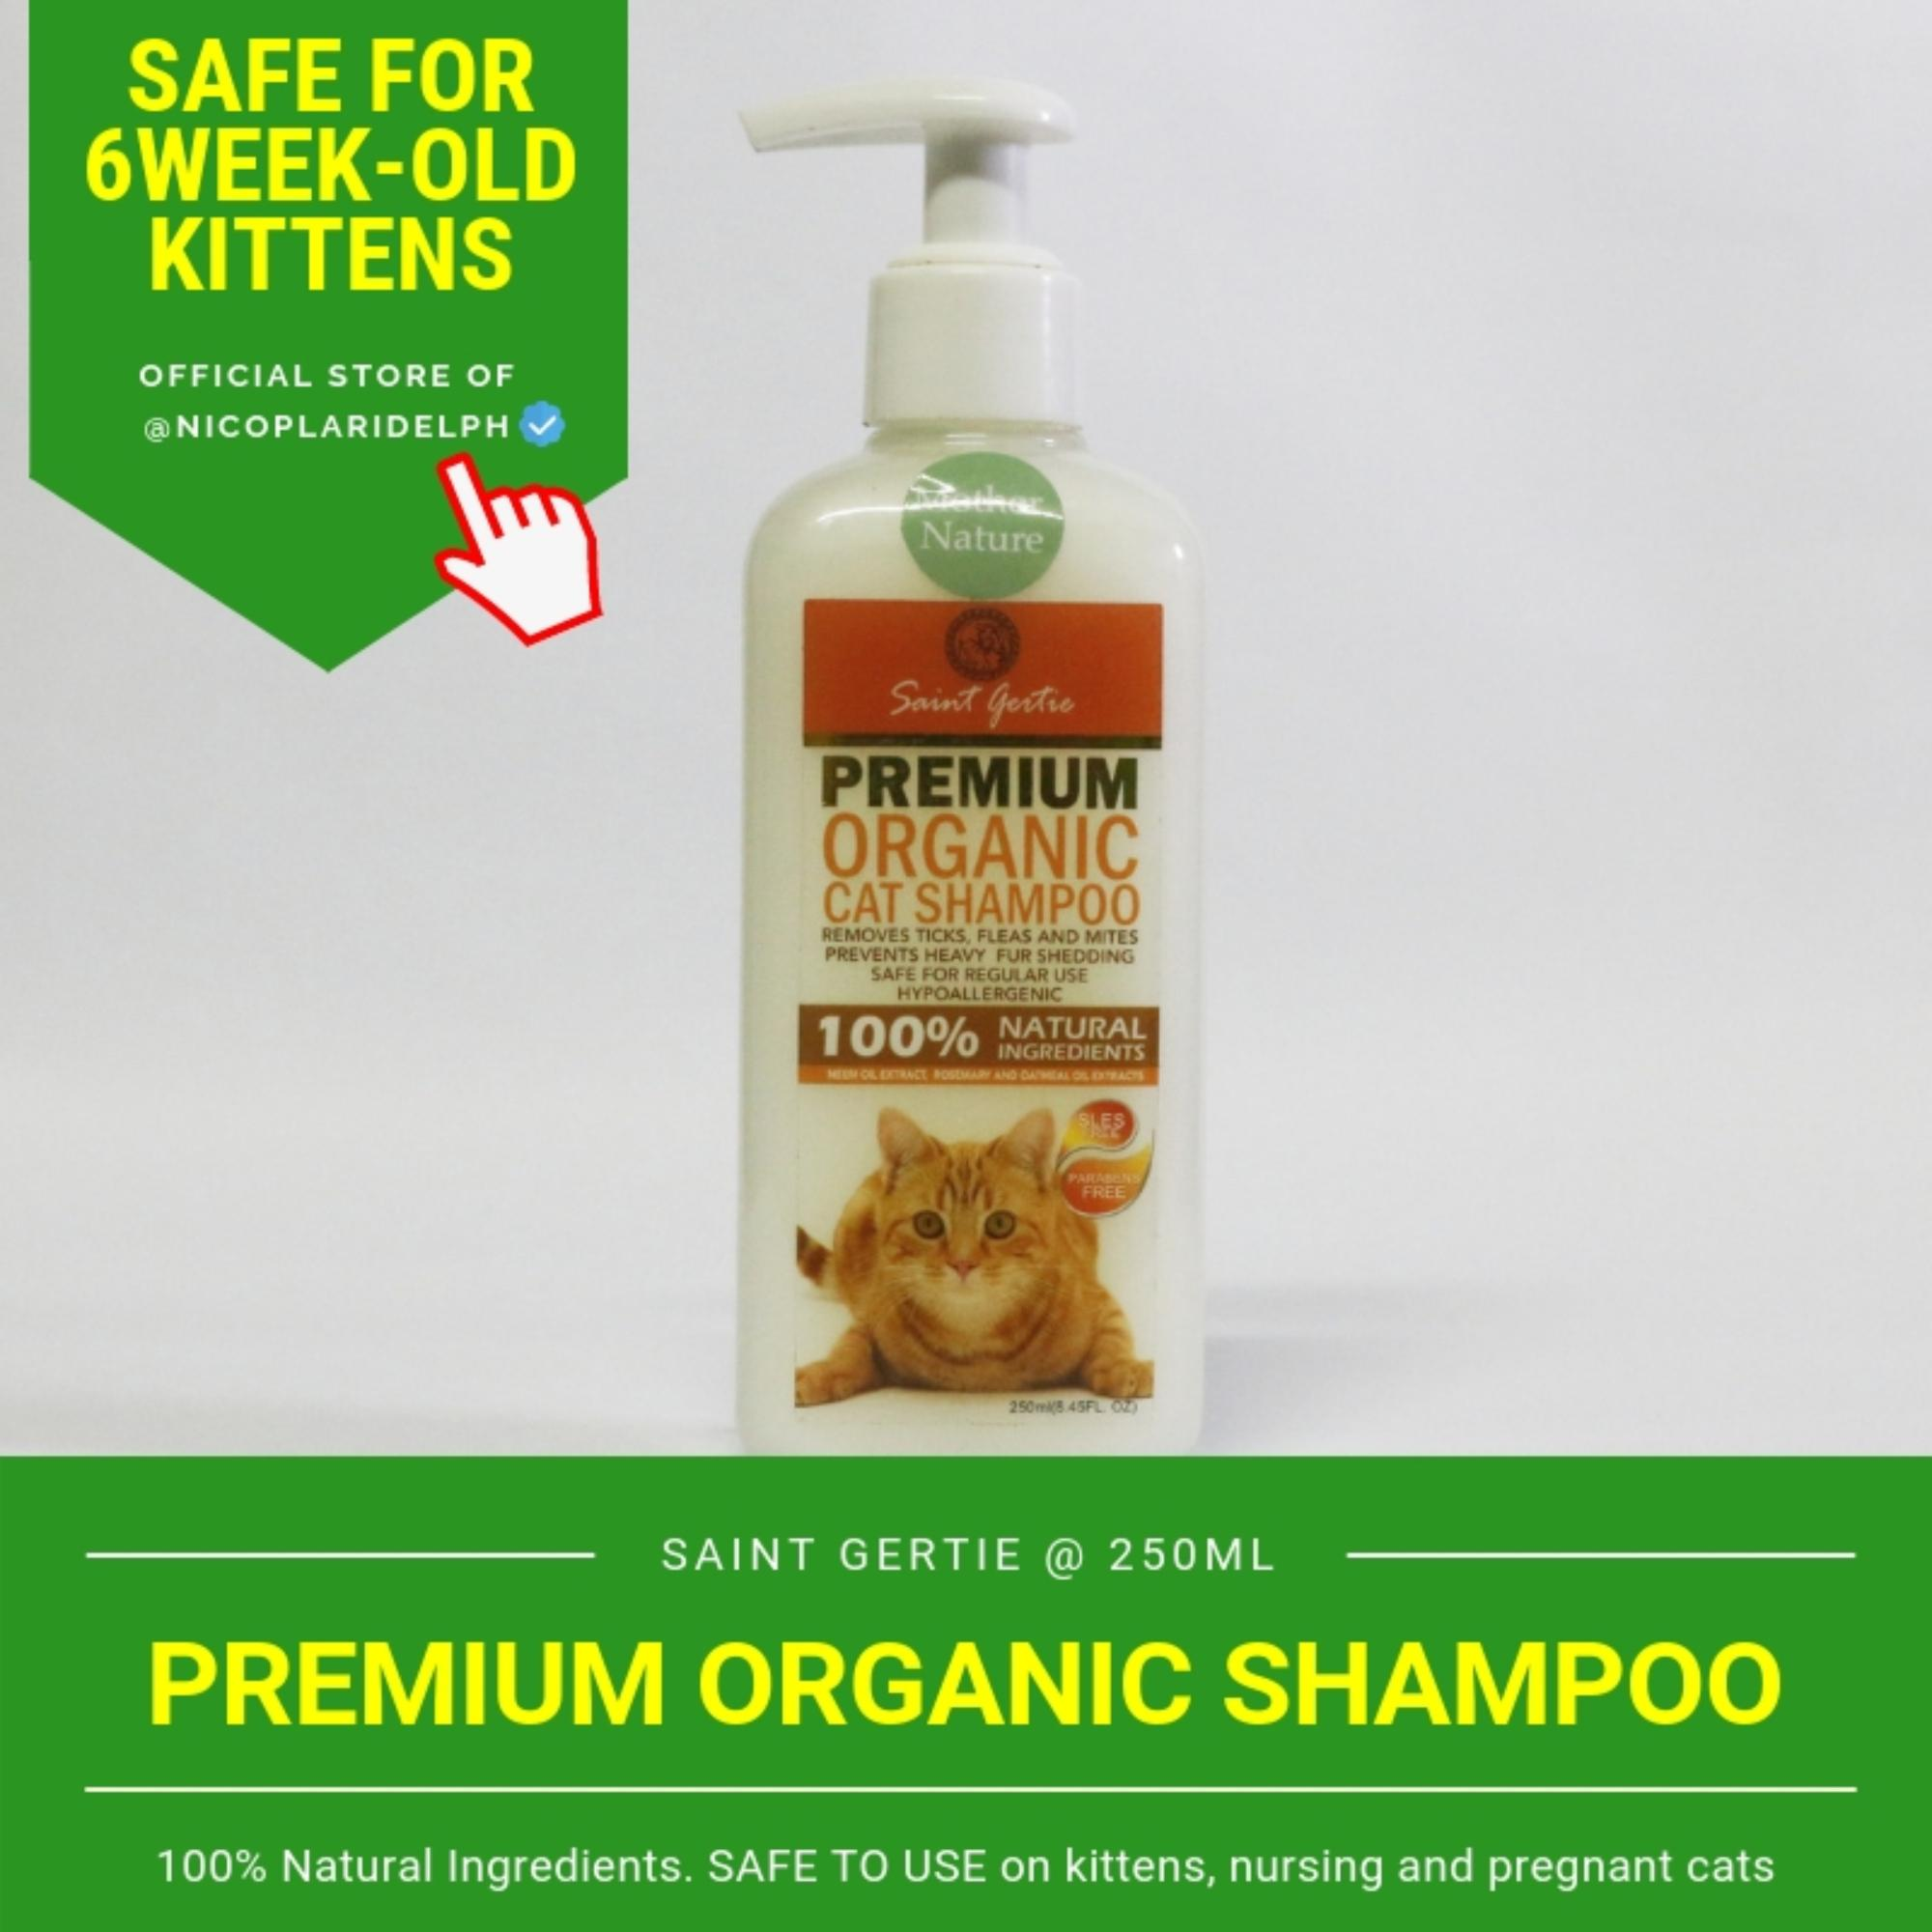 Saint Gertie Premium Organic Cat Shampoo Mother Nature Scent (250ml) By Nicoplaridelph.